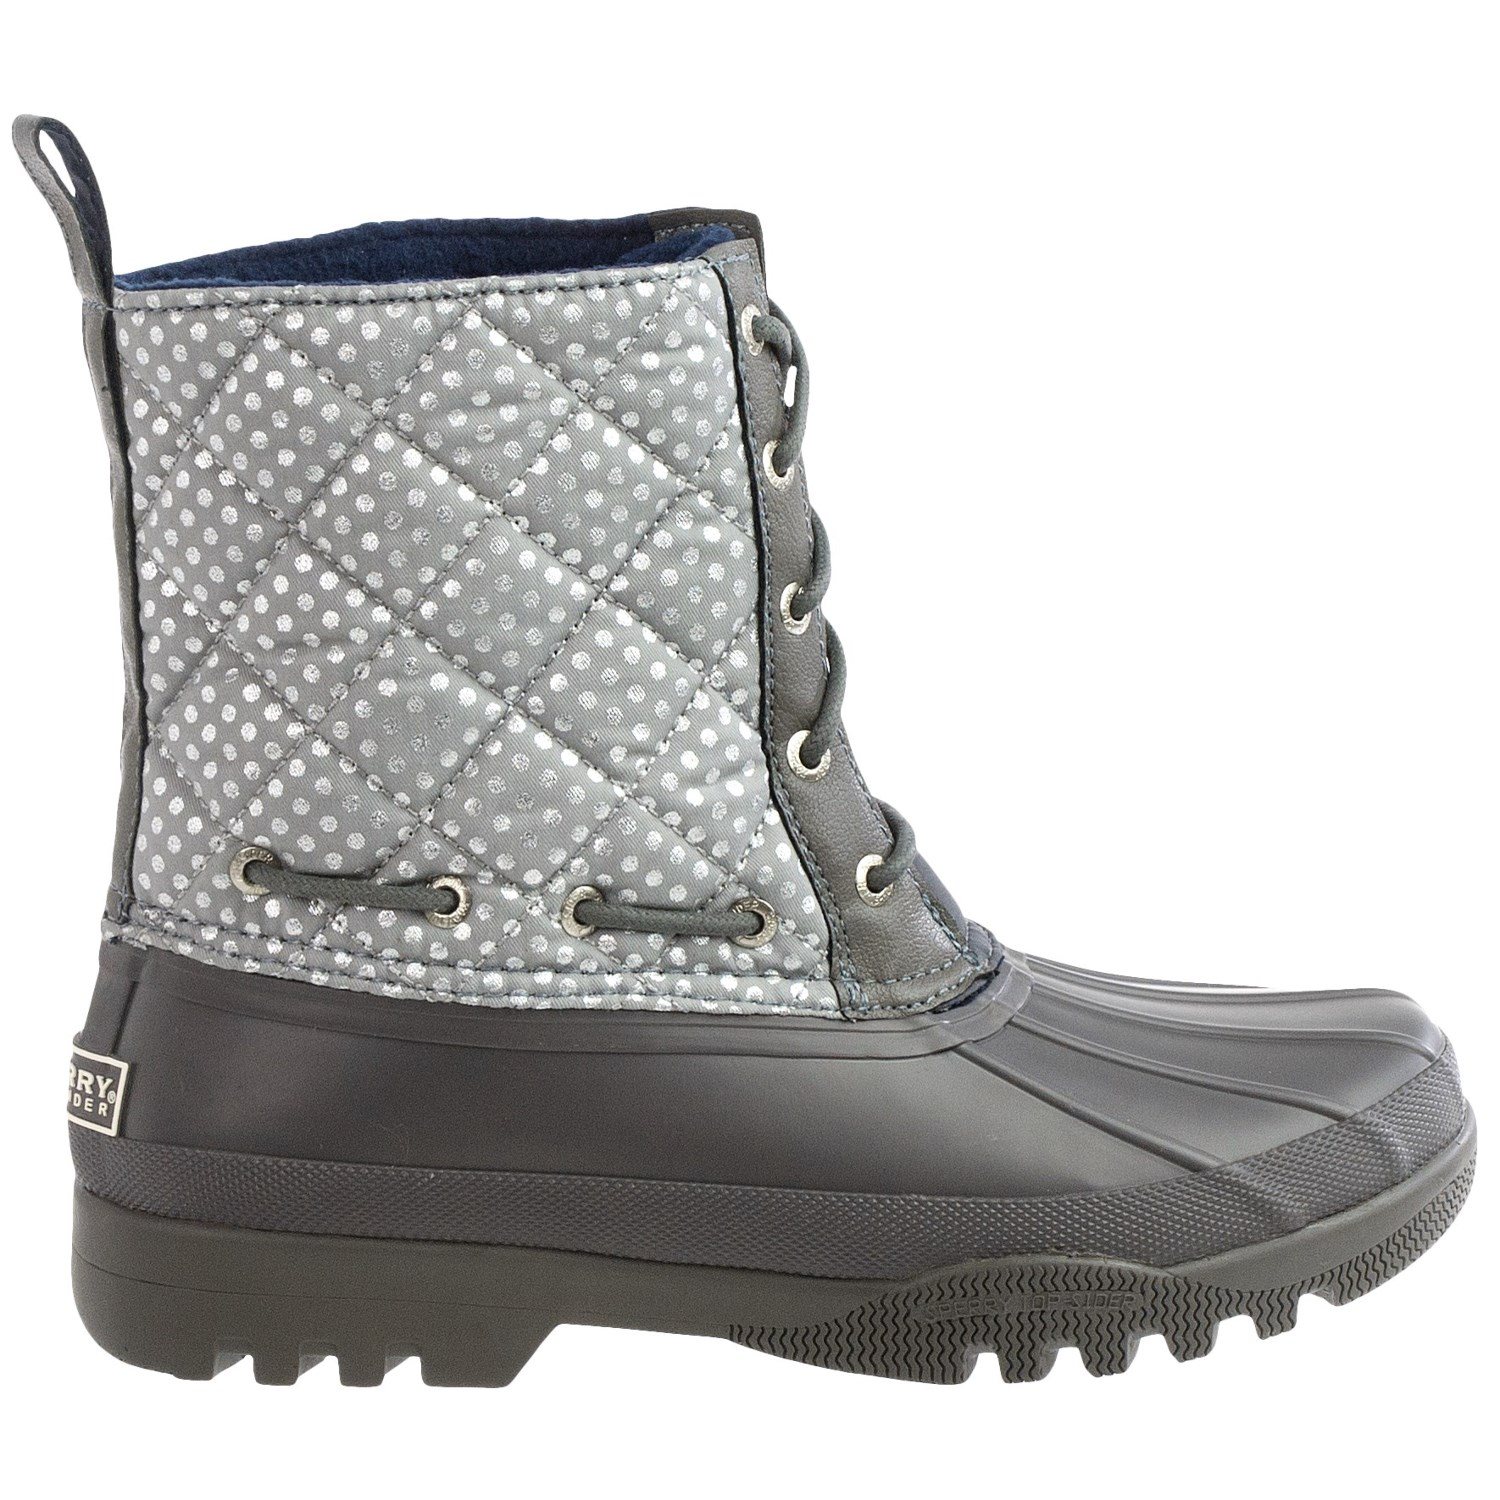 Sperry Gosling Duck Boots (For Women)